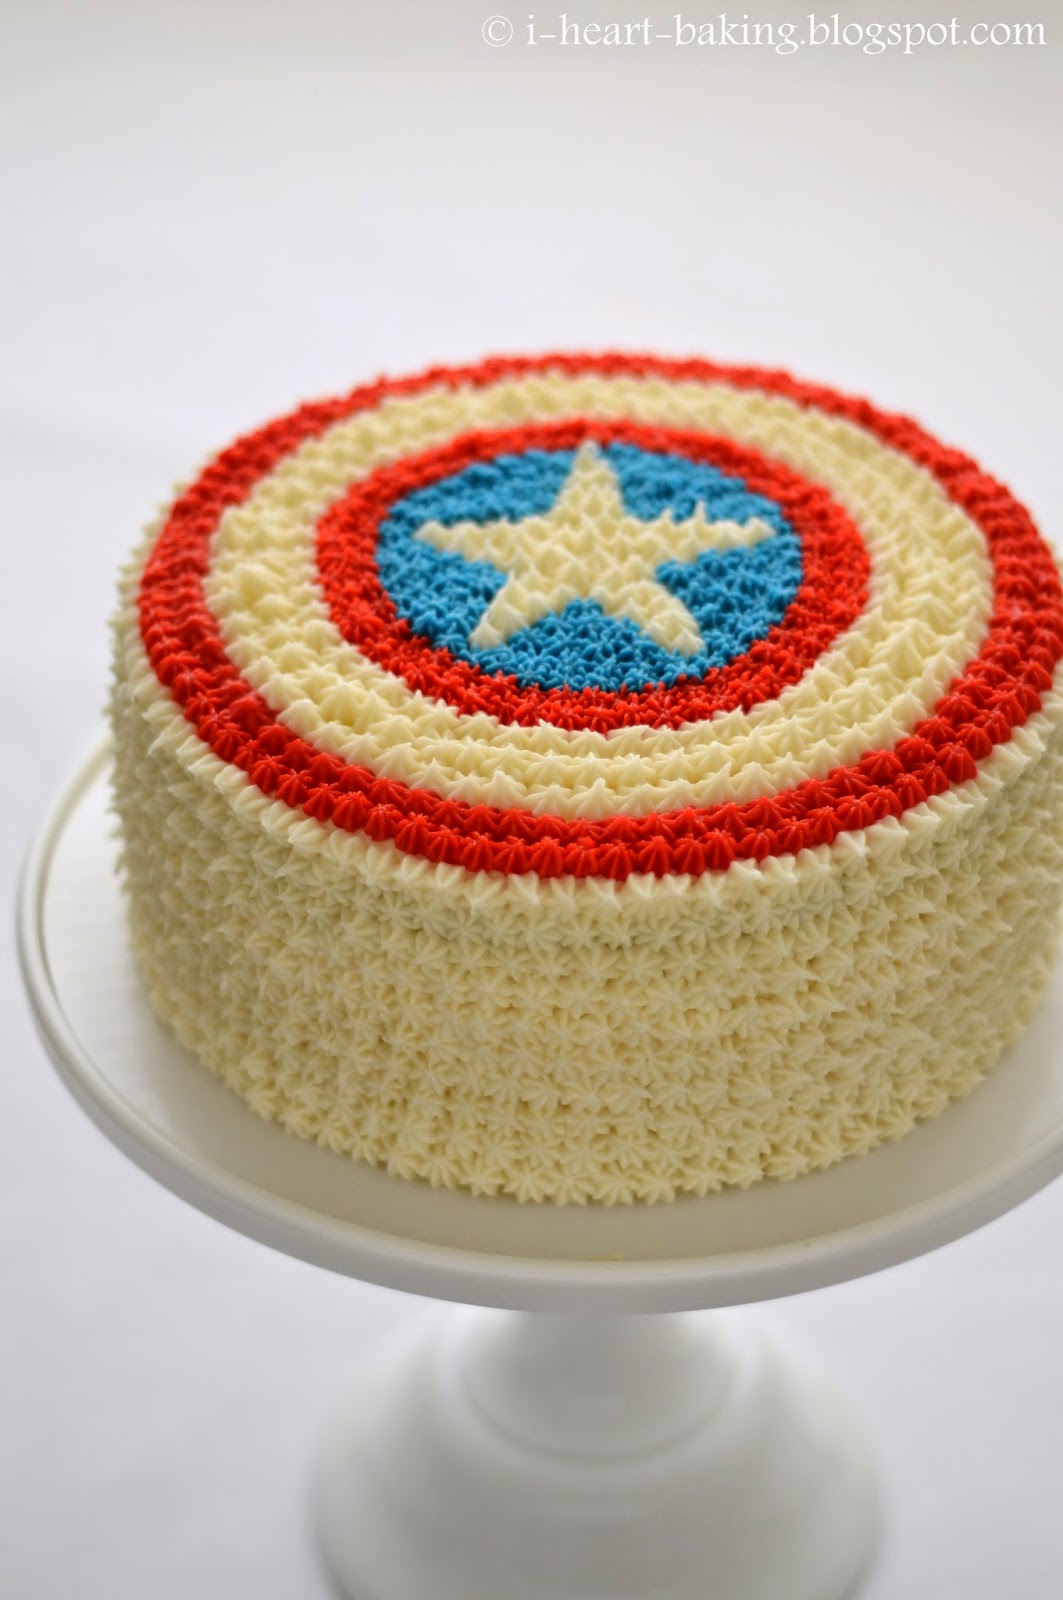 I Heart Baking Captain America Cake With Flag Inside And Haupia